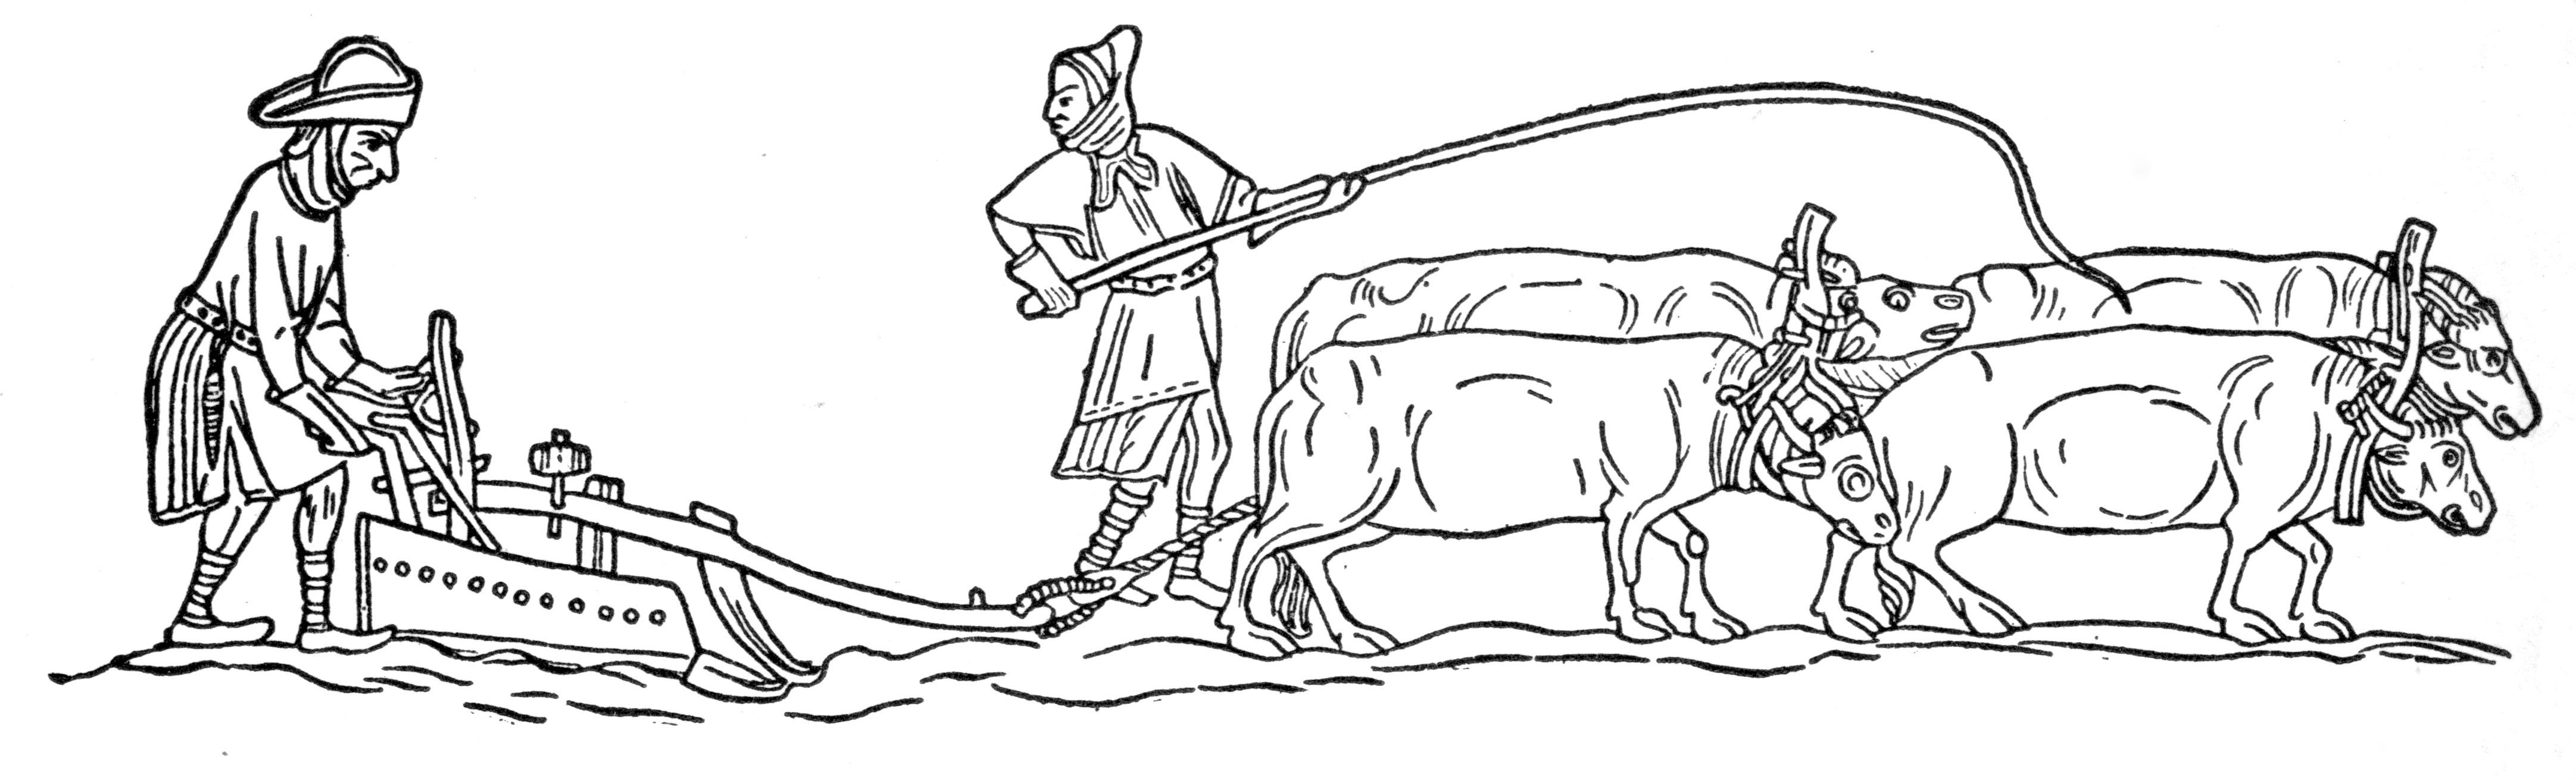 Medieval plowing with oxen (from a 14th century manuscript)